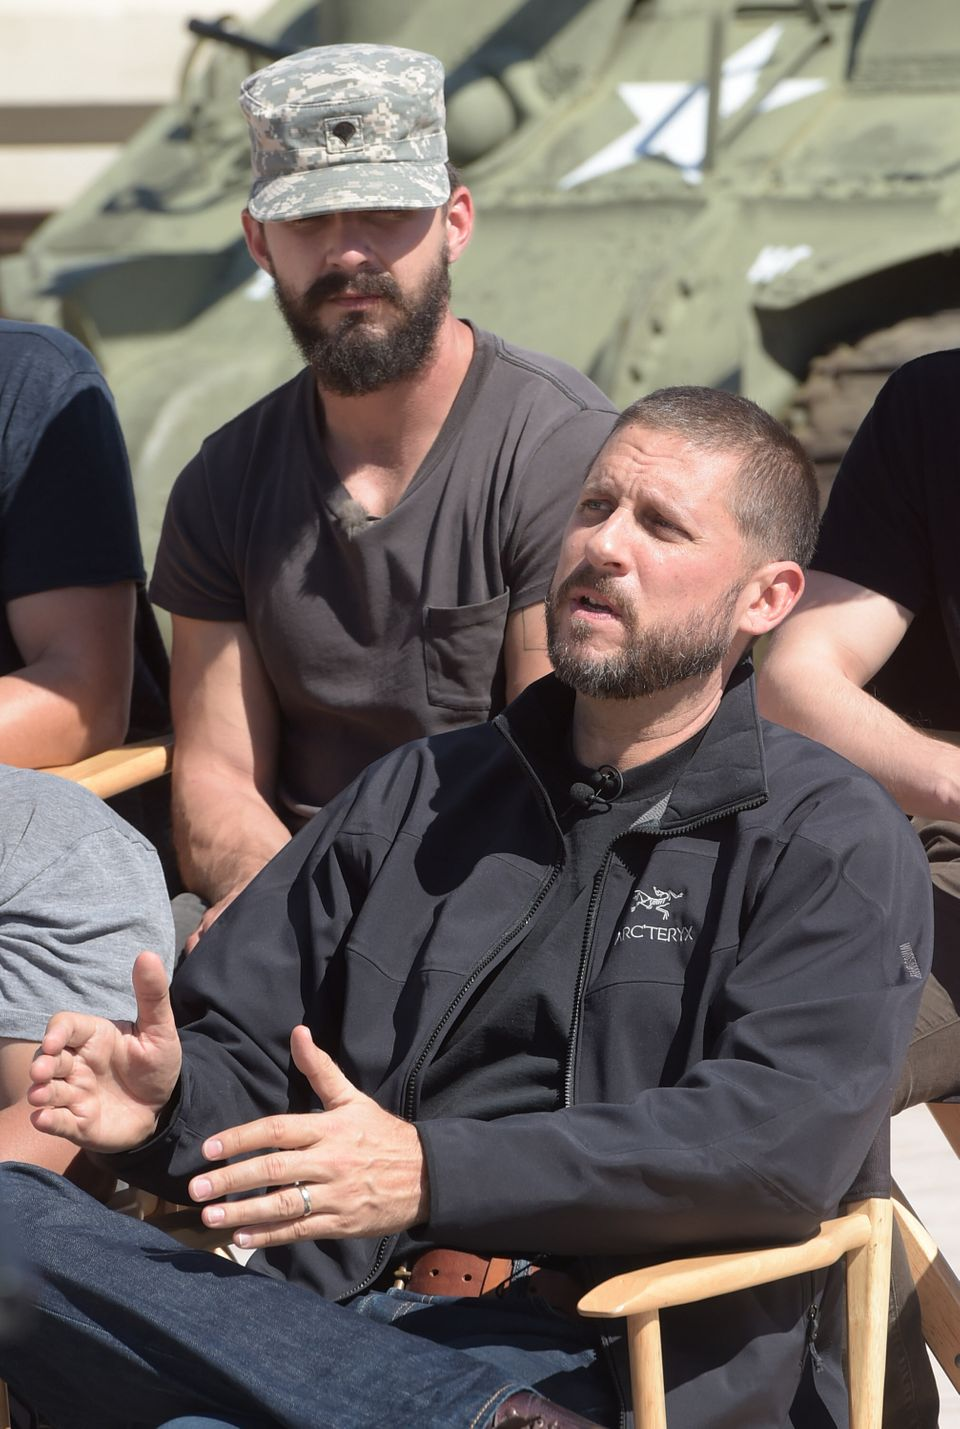 COLUMBUS, GA - OCTOBER 16: Actor Shia LaBeouf and Writer/Director David Ayer attend 'Fury' - Fort Benning Georgia Special Scr